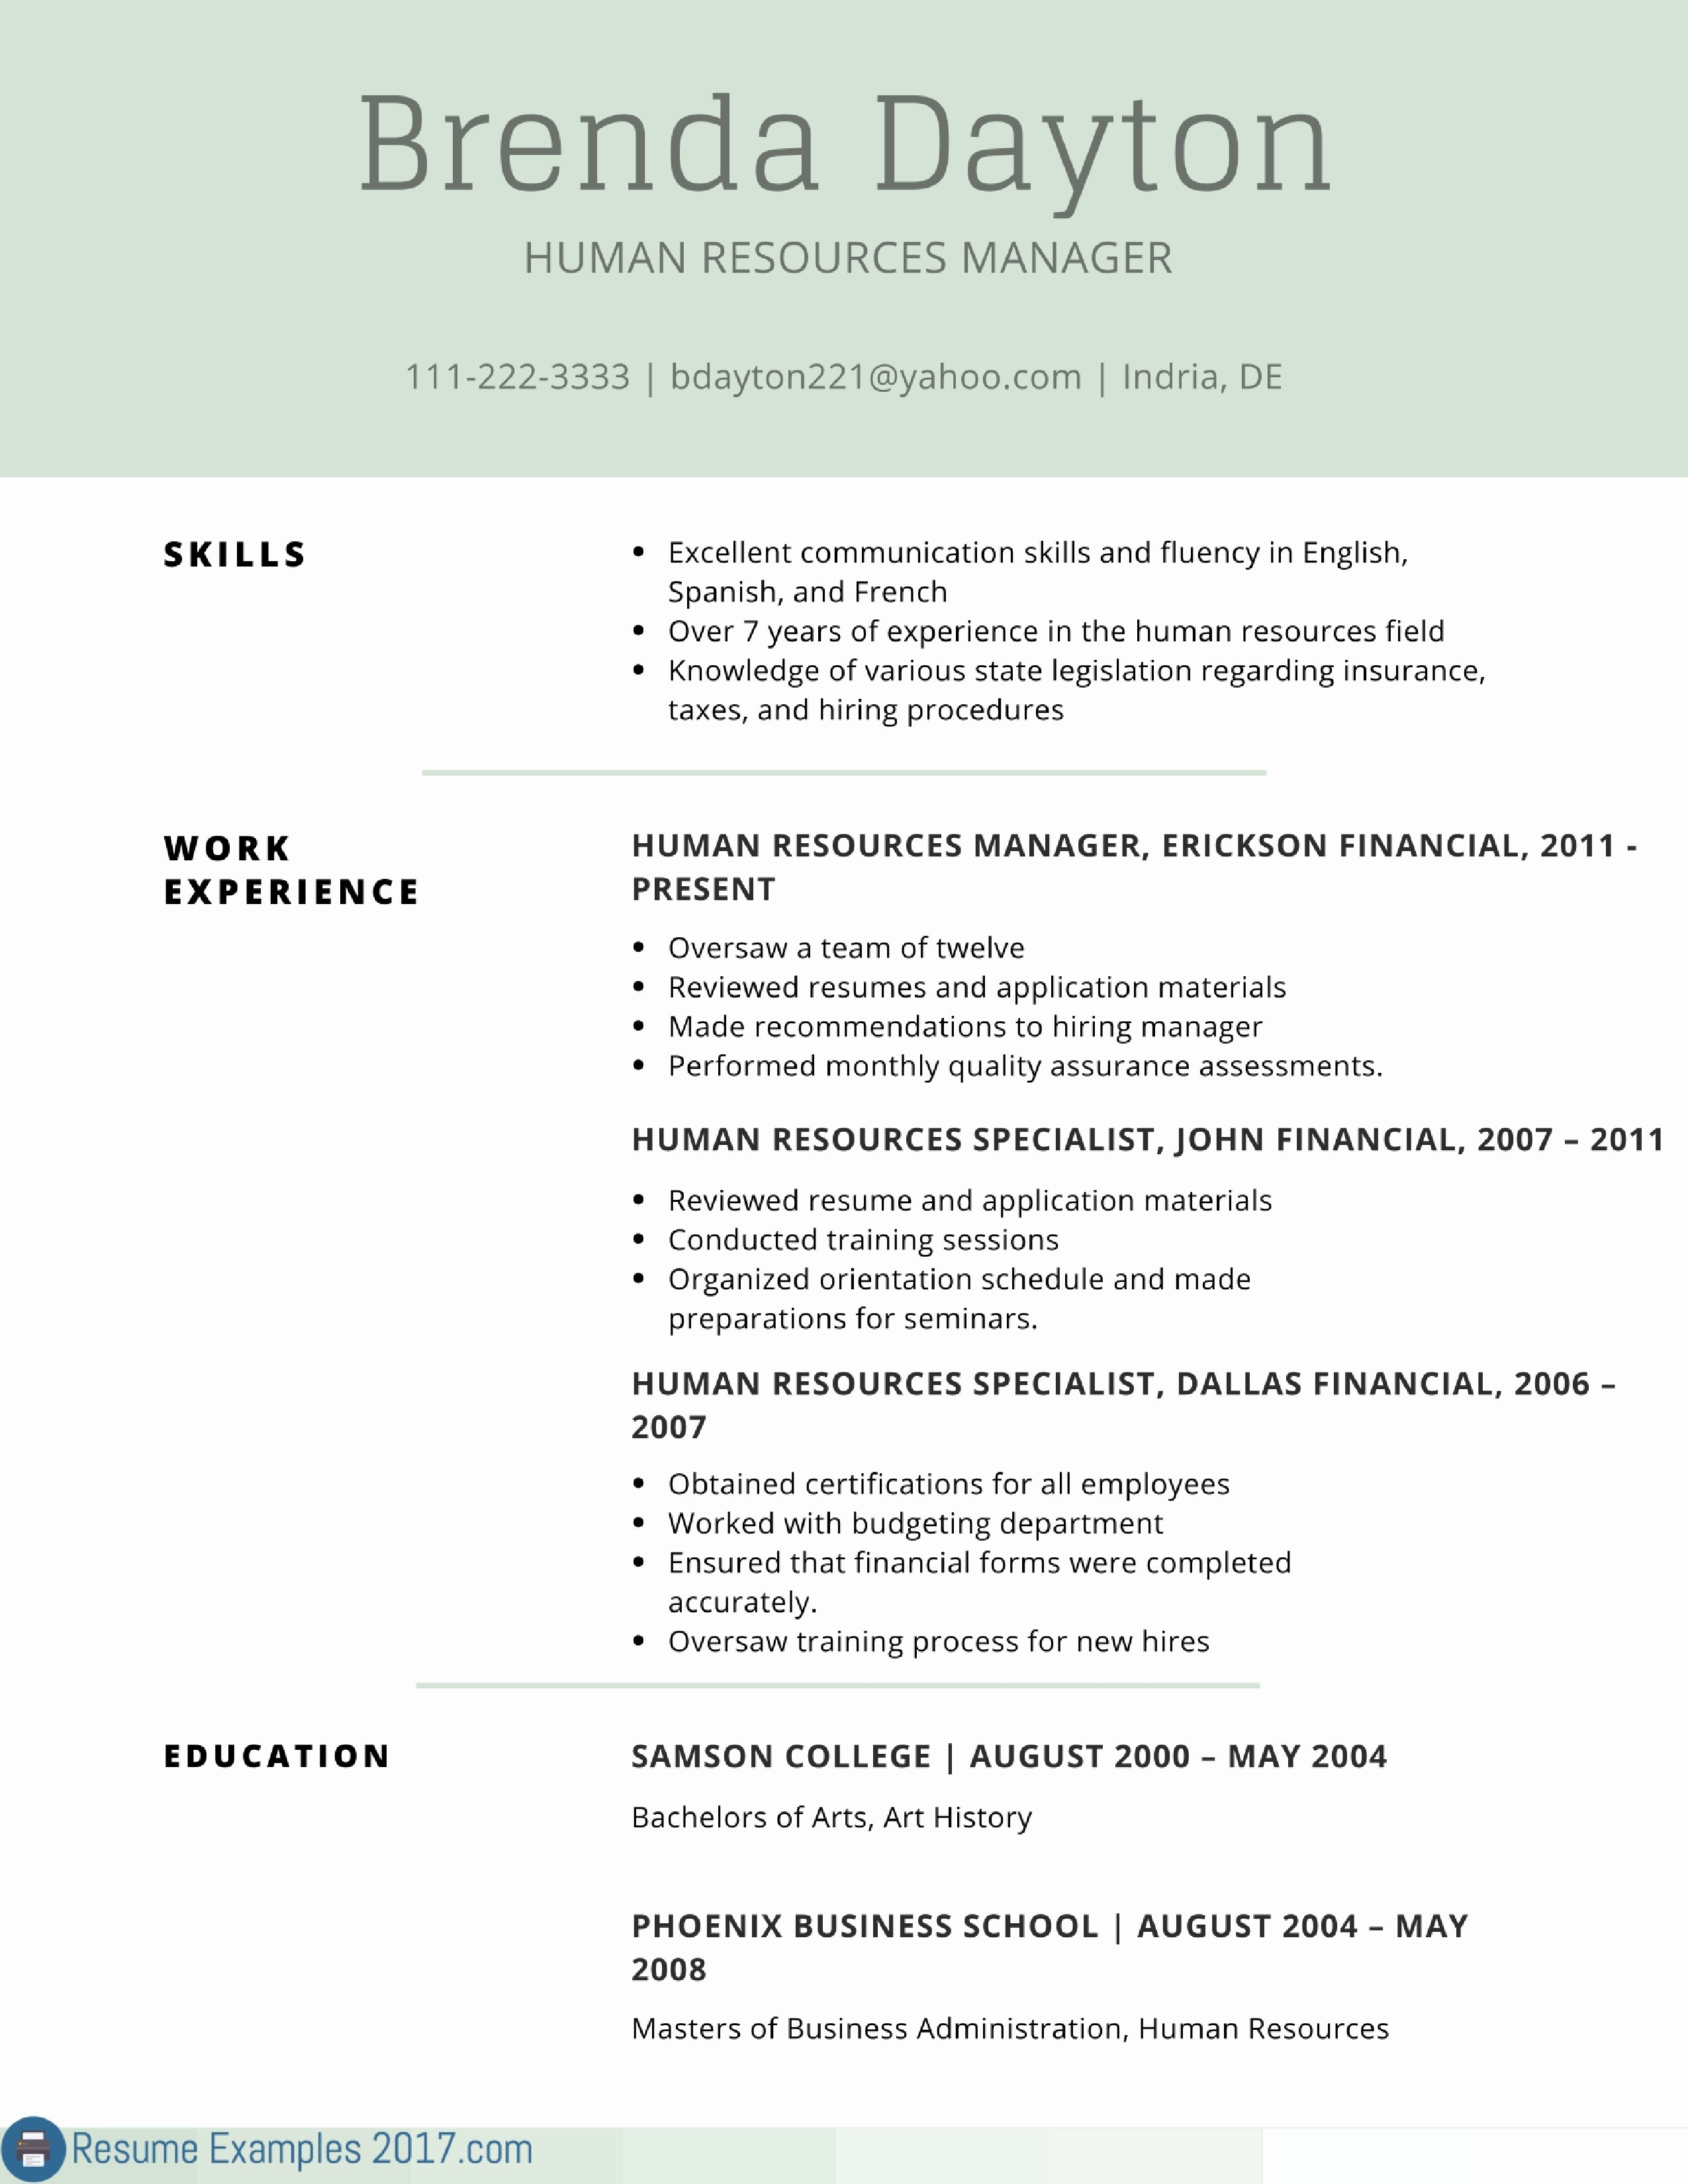 Brief Summary for Resume - Download Best Example Resume Summary